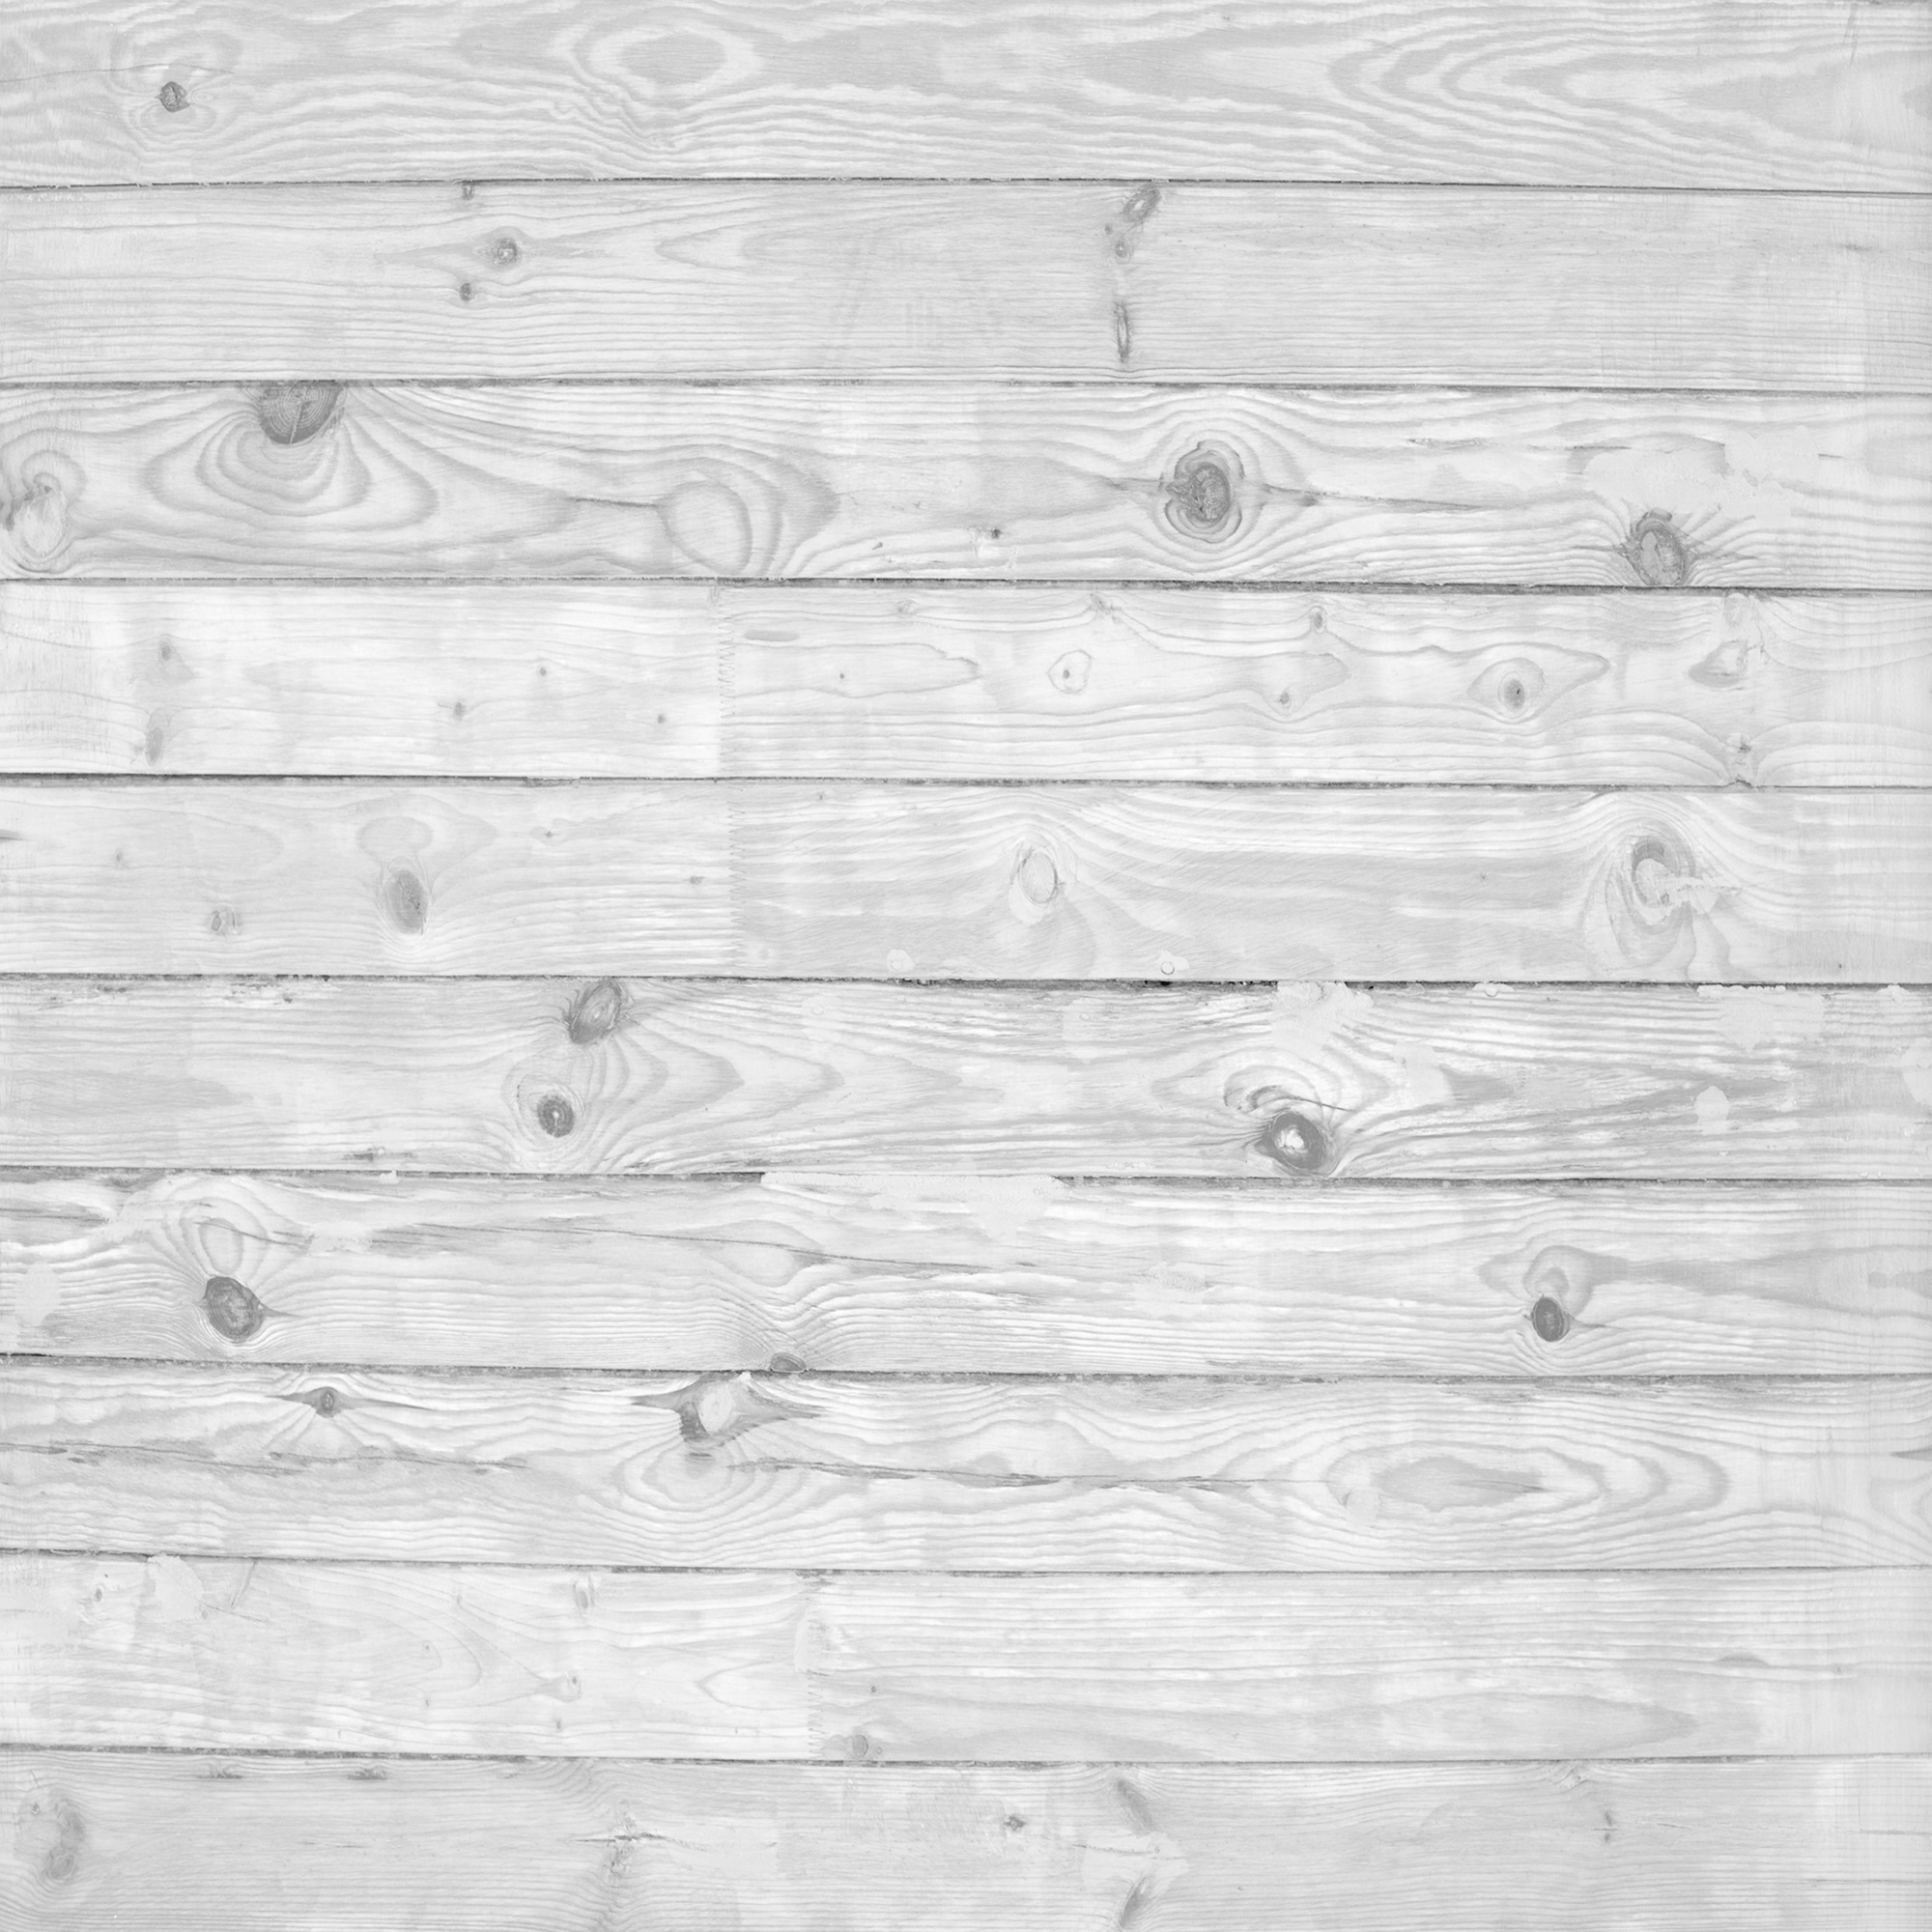 Background of planks